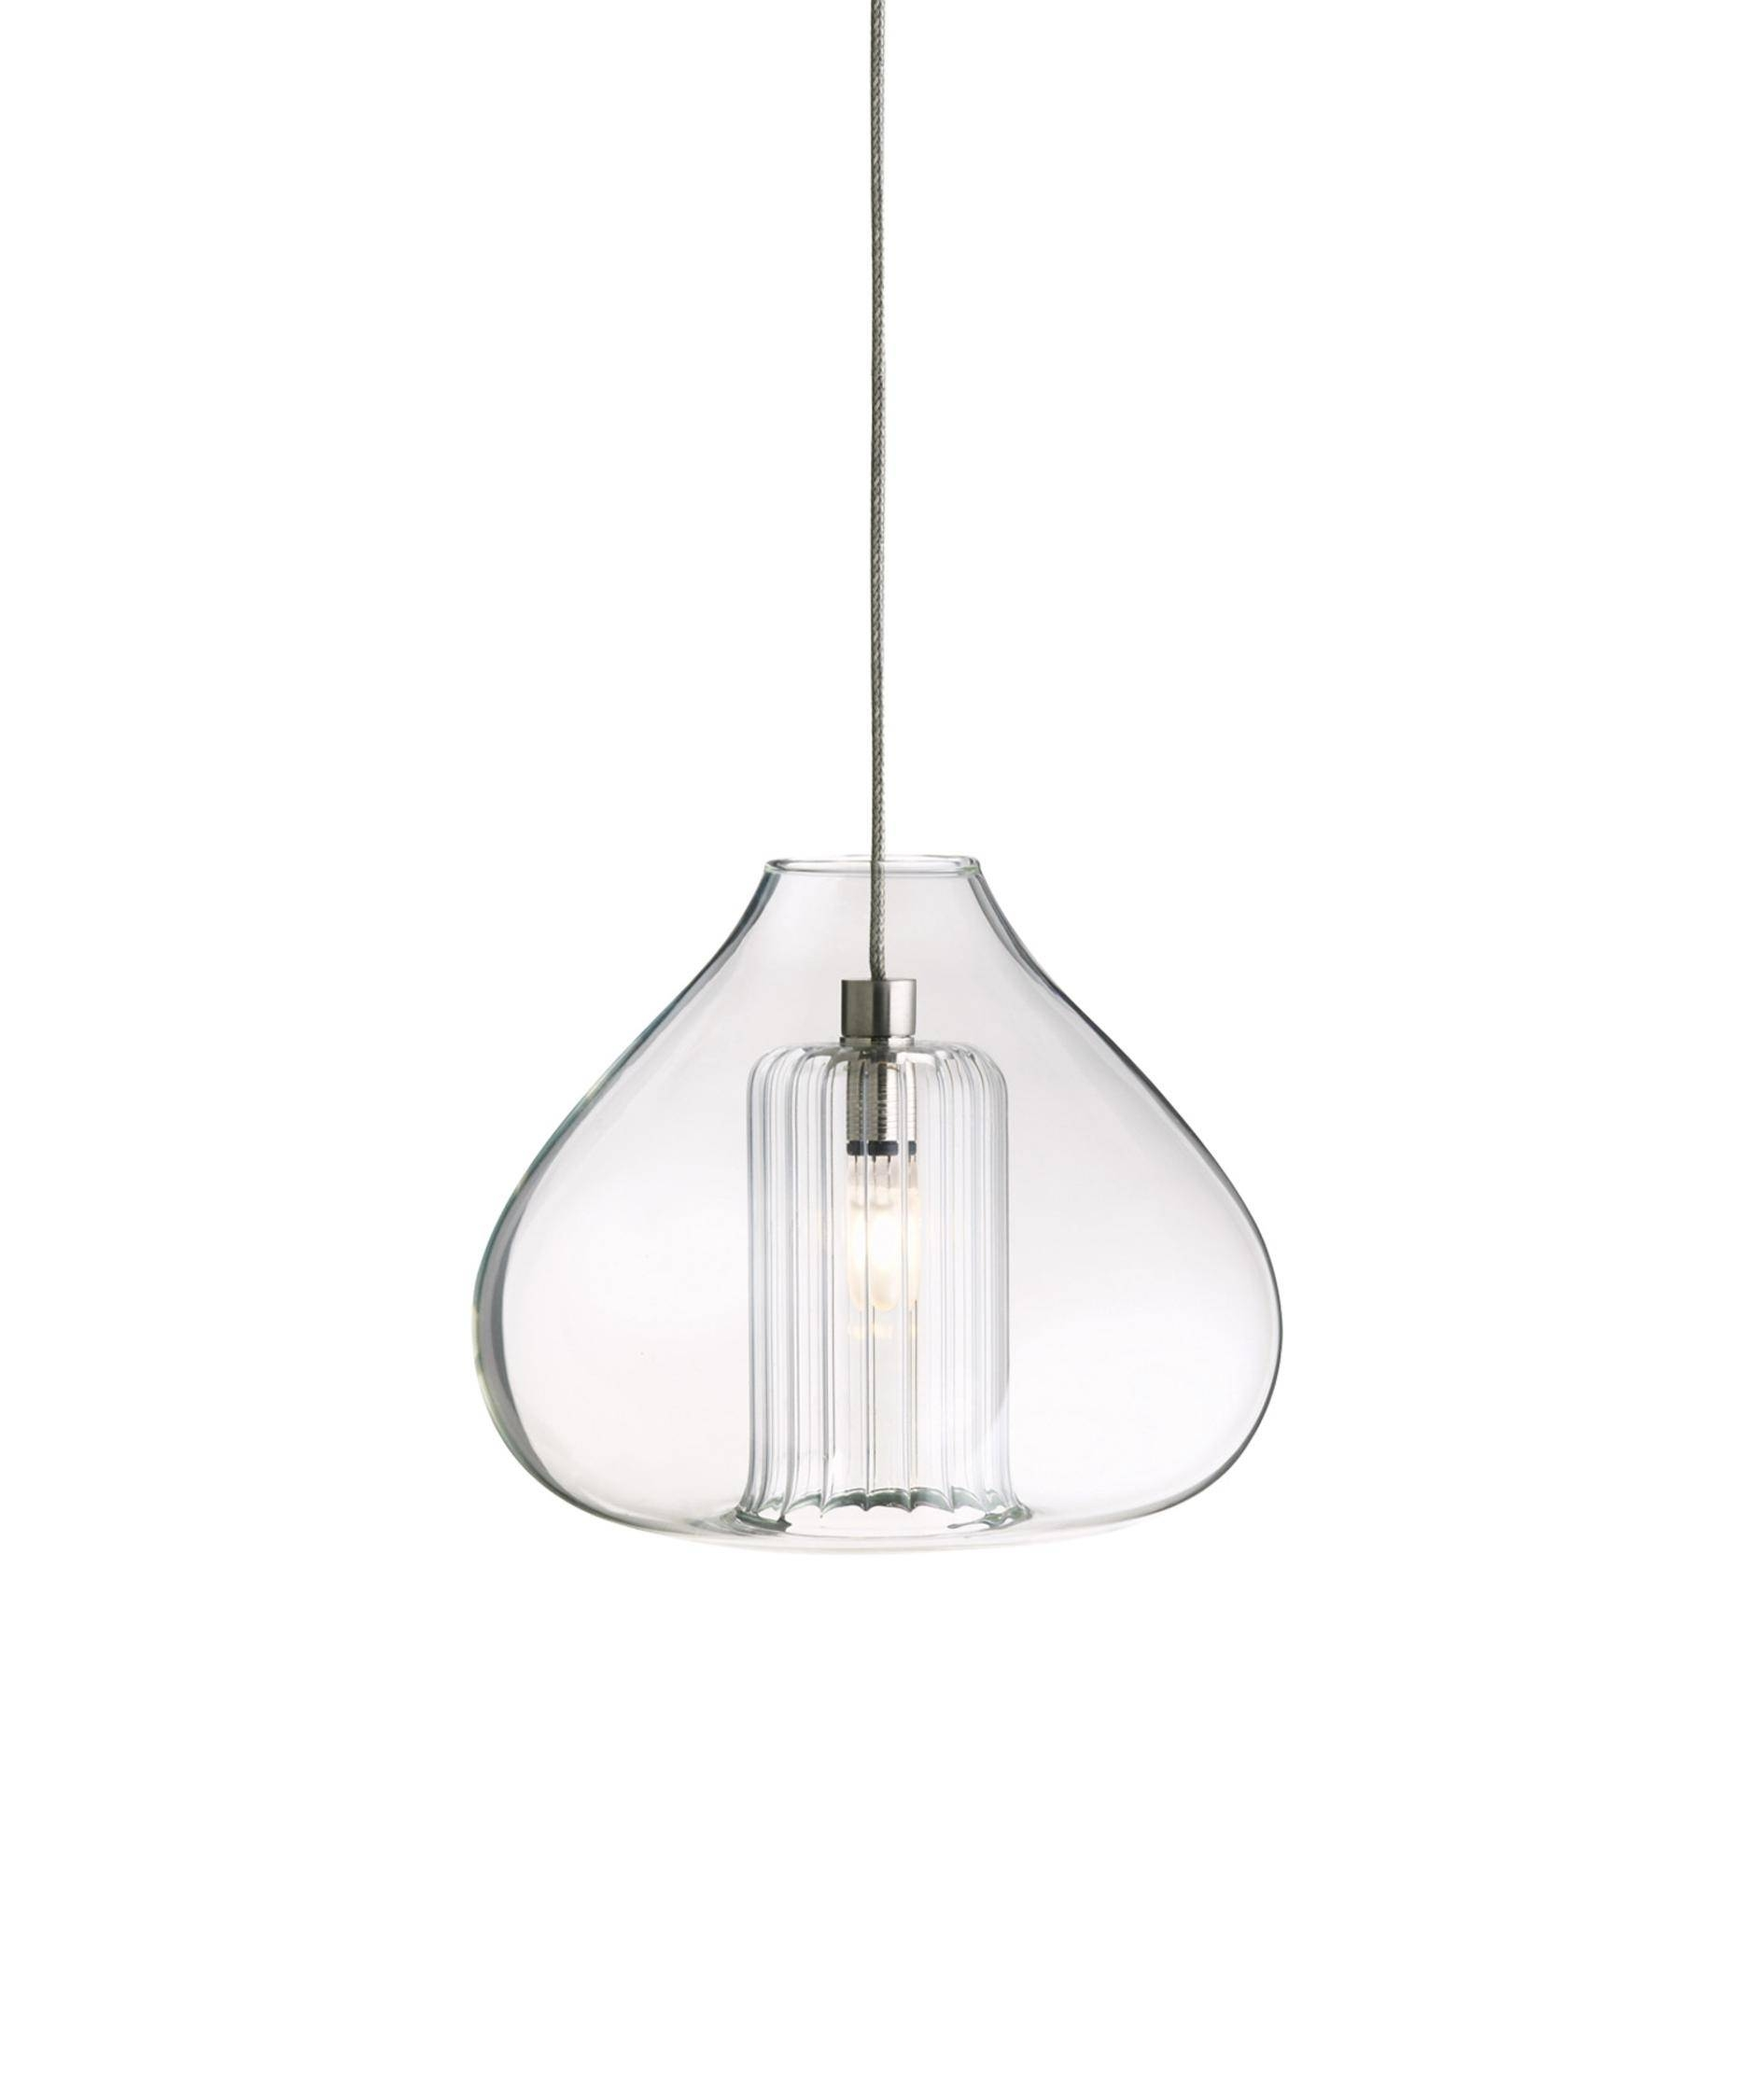 Ceiling Lights : Glamorous Halo Track Lighting Pendant Adapter within Exposed Bulb Pendant Track Lighting (Image 6 of 15)